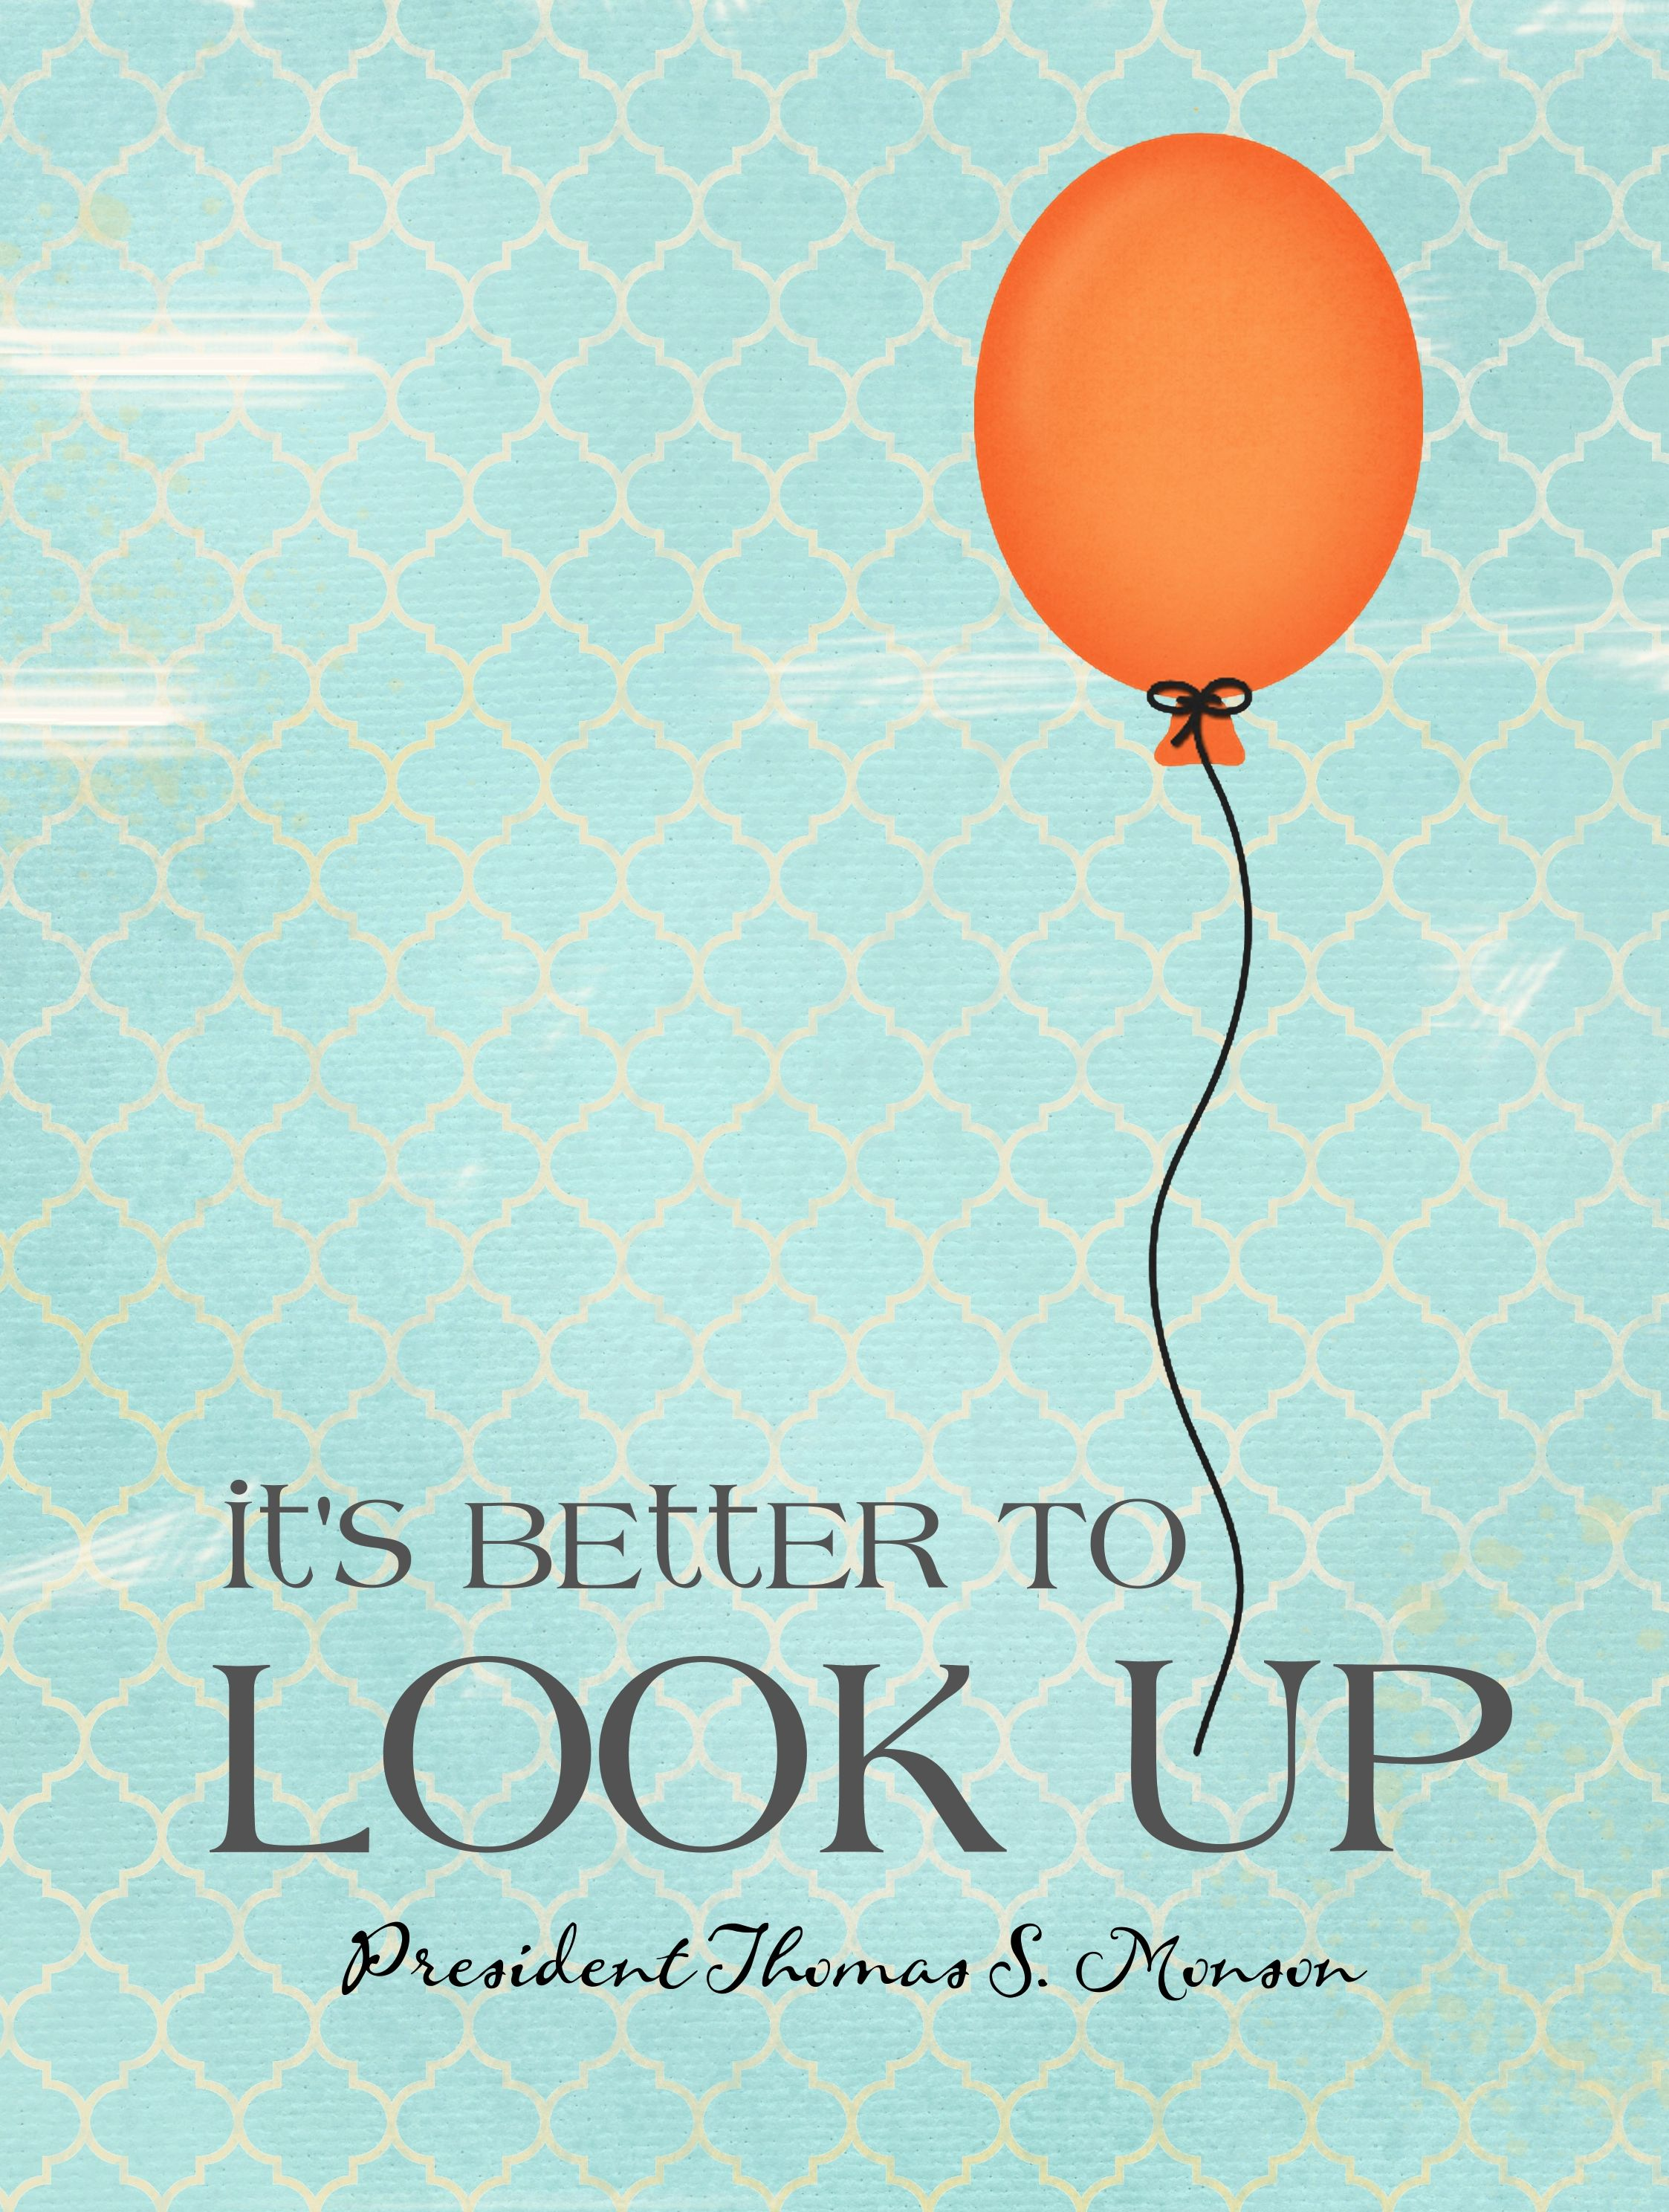 Its Better To Look Upthomas S Monson Graphic By Stephanie